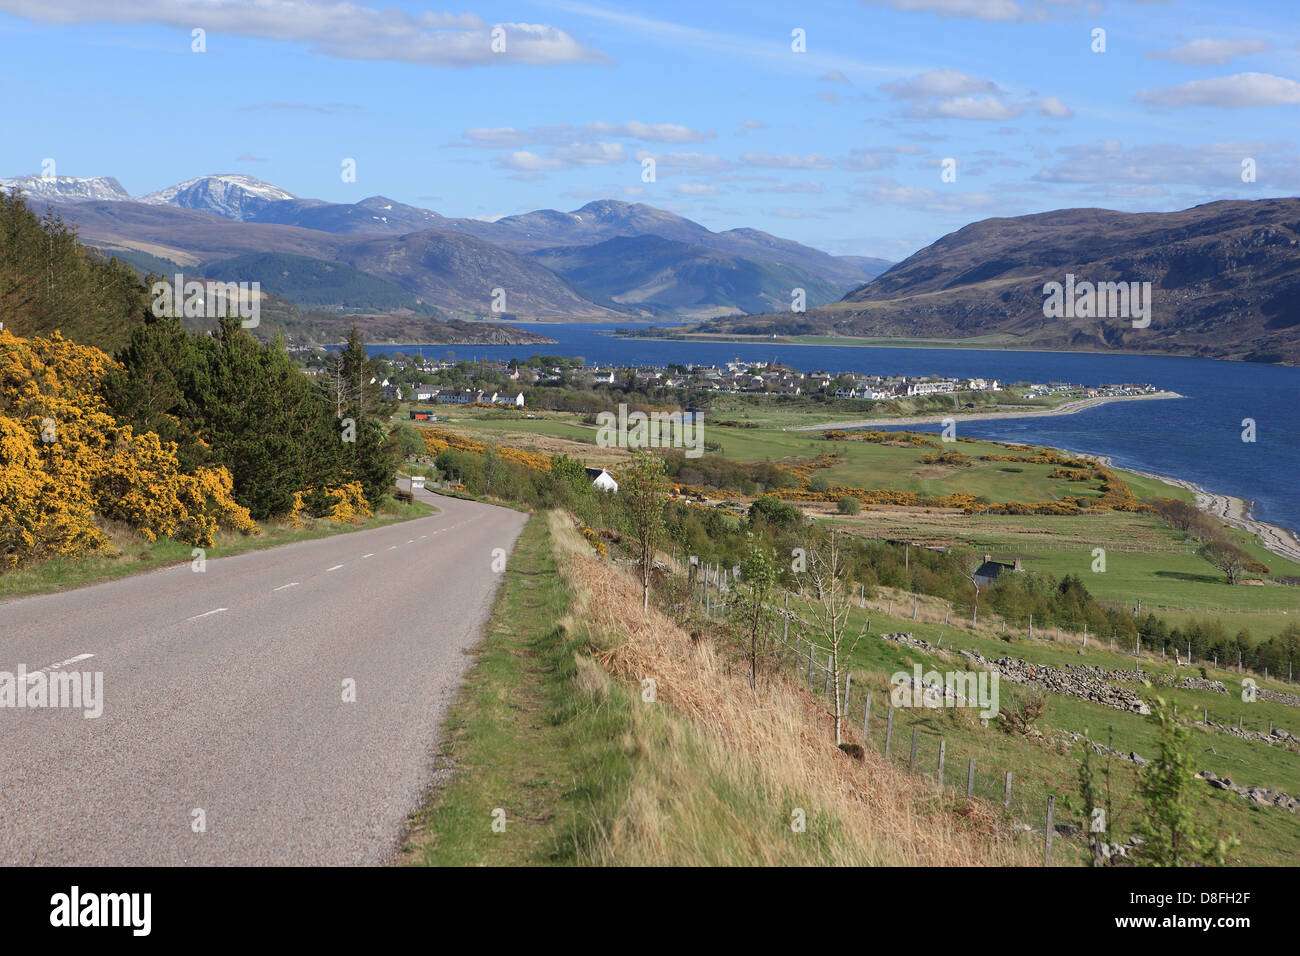 Ullapool nestling on the shores of Loch Broom in Highland Scotland - Stock Image